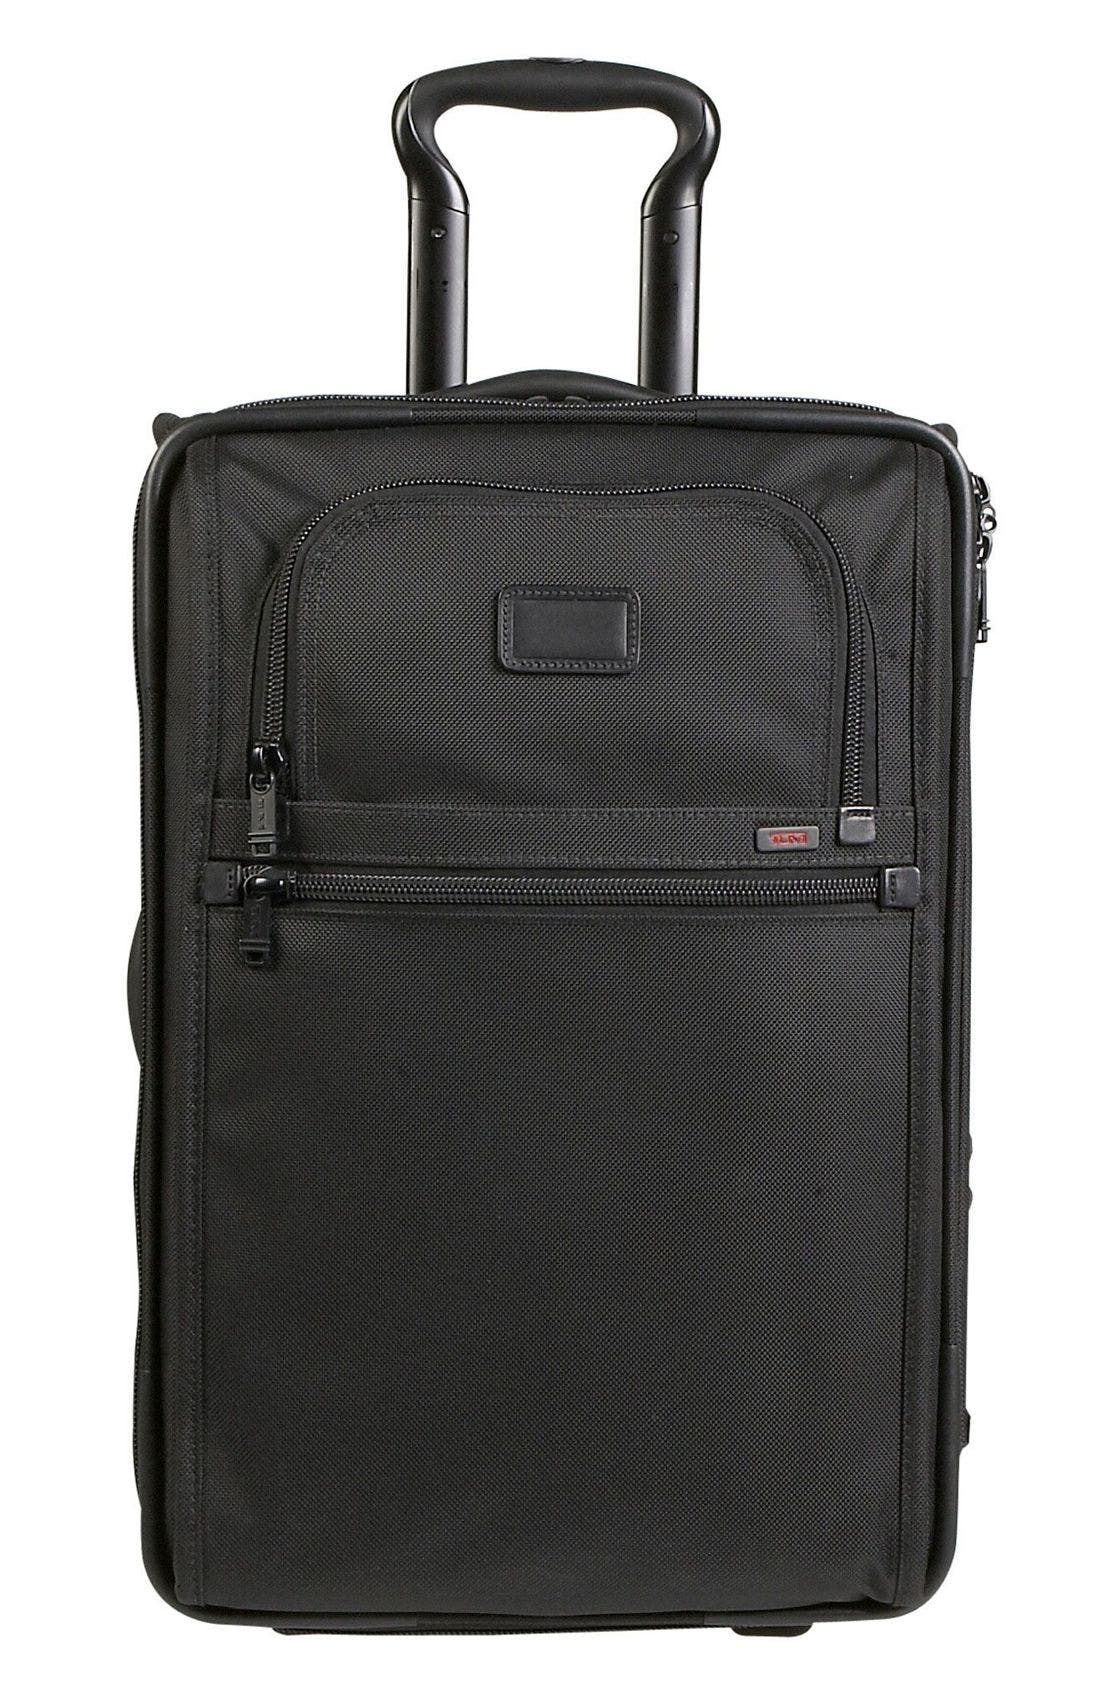 Alternate Image 1 Selected - Tumi 'Alpha' International Expandable Carry-On